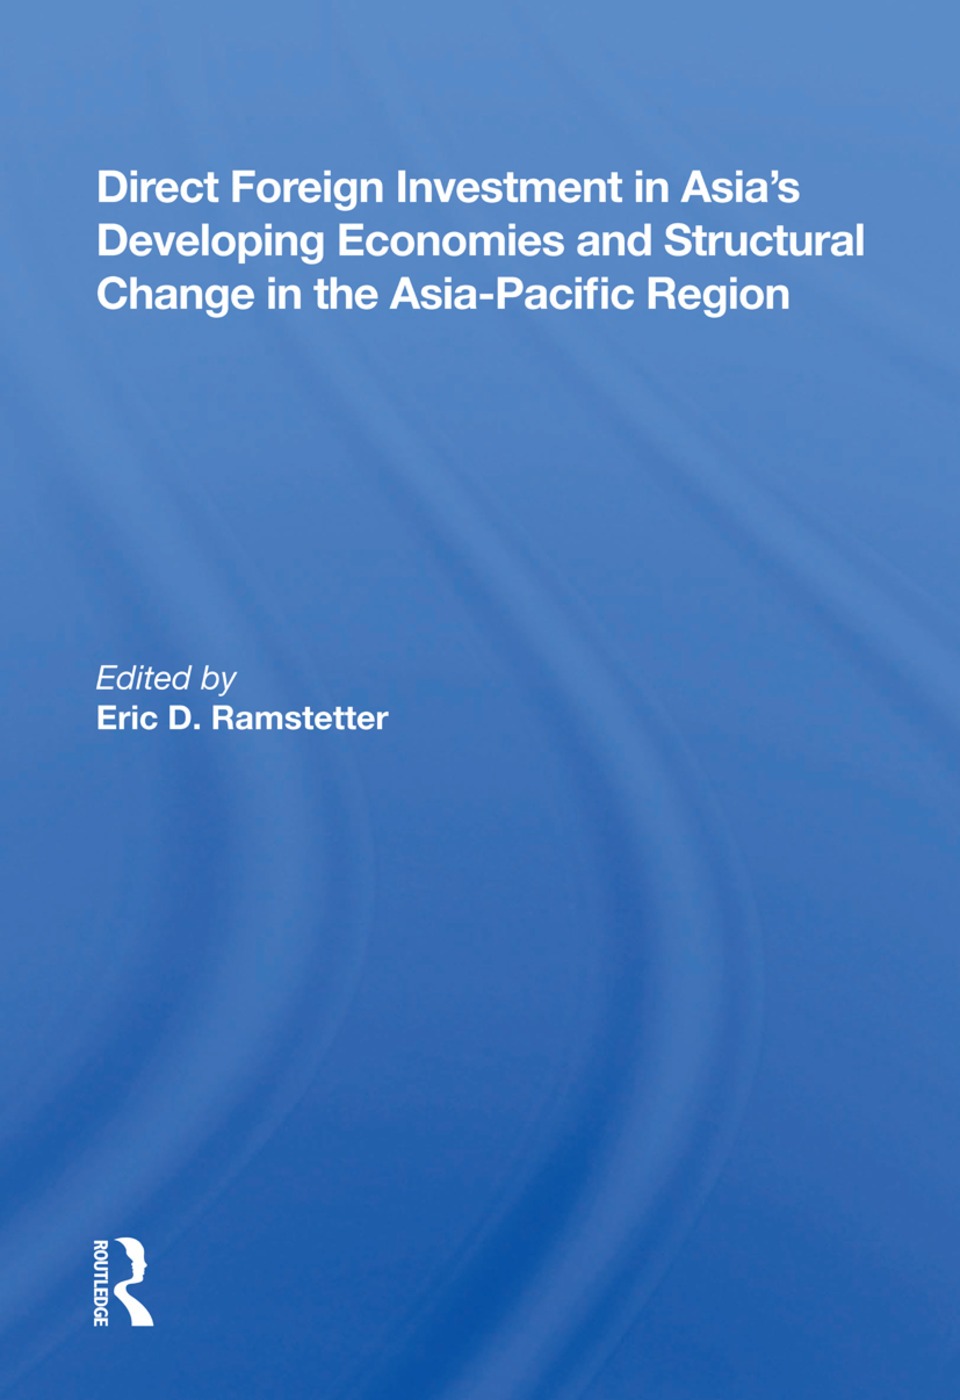 Direct Foreign Investment In Asia's Developing Economies And Structural Change In The Asia-pacific Region: 1st Edition (Paperback) book cover